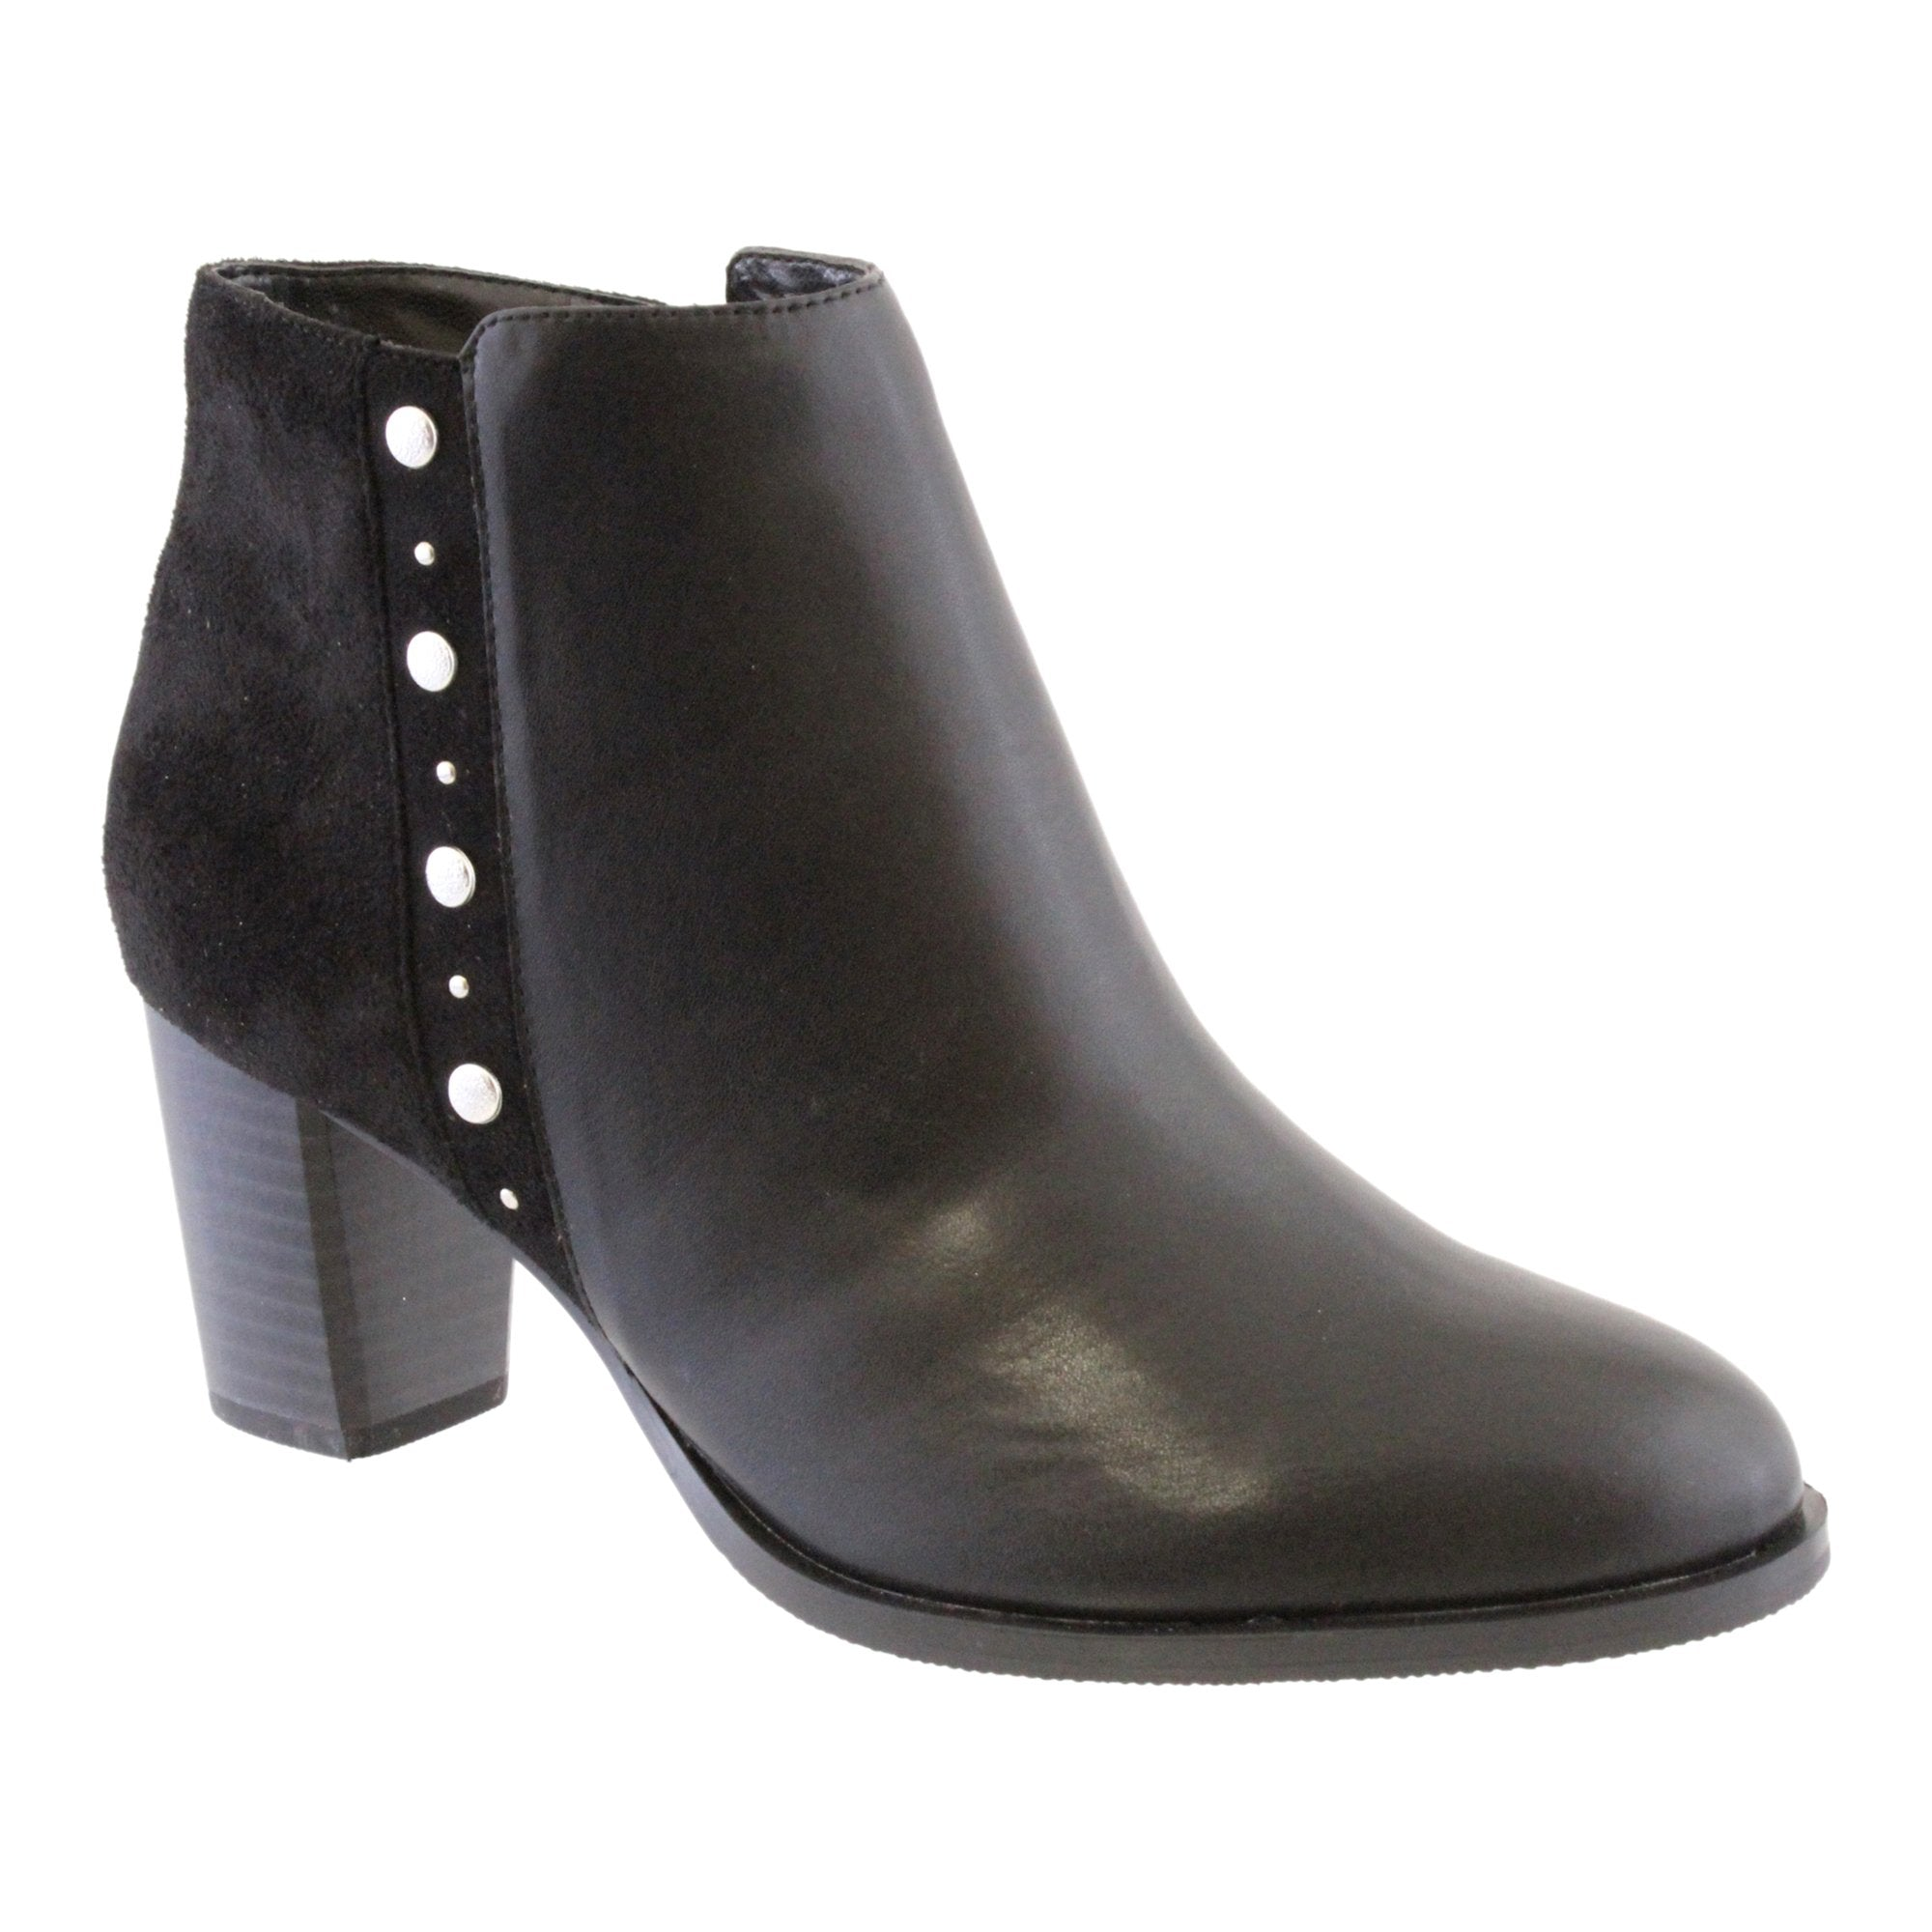 susst black ankle boot